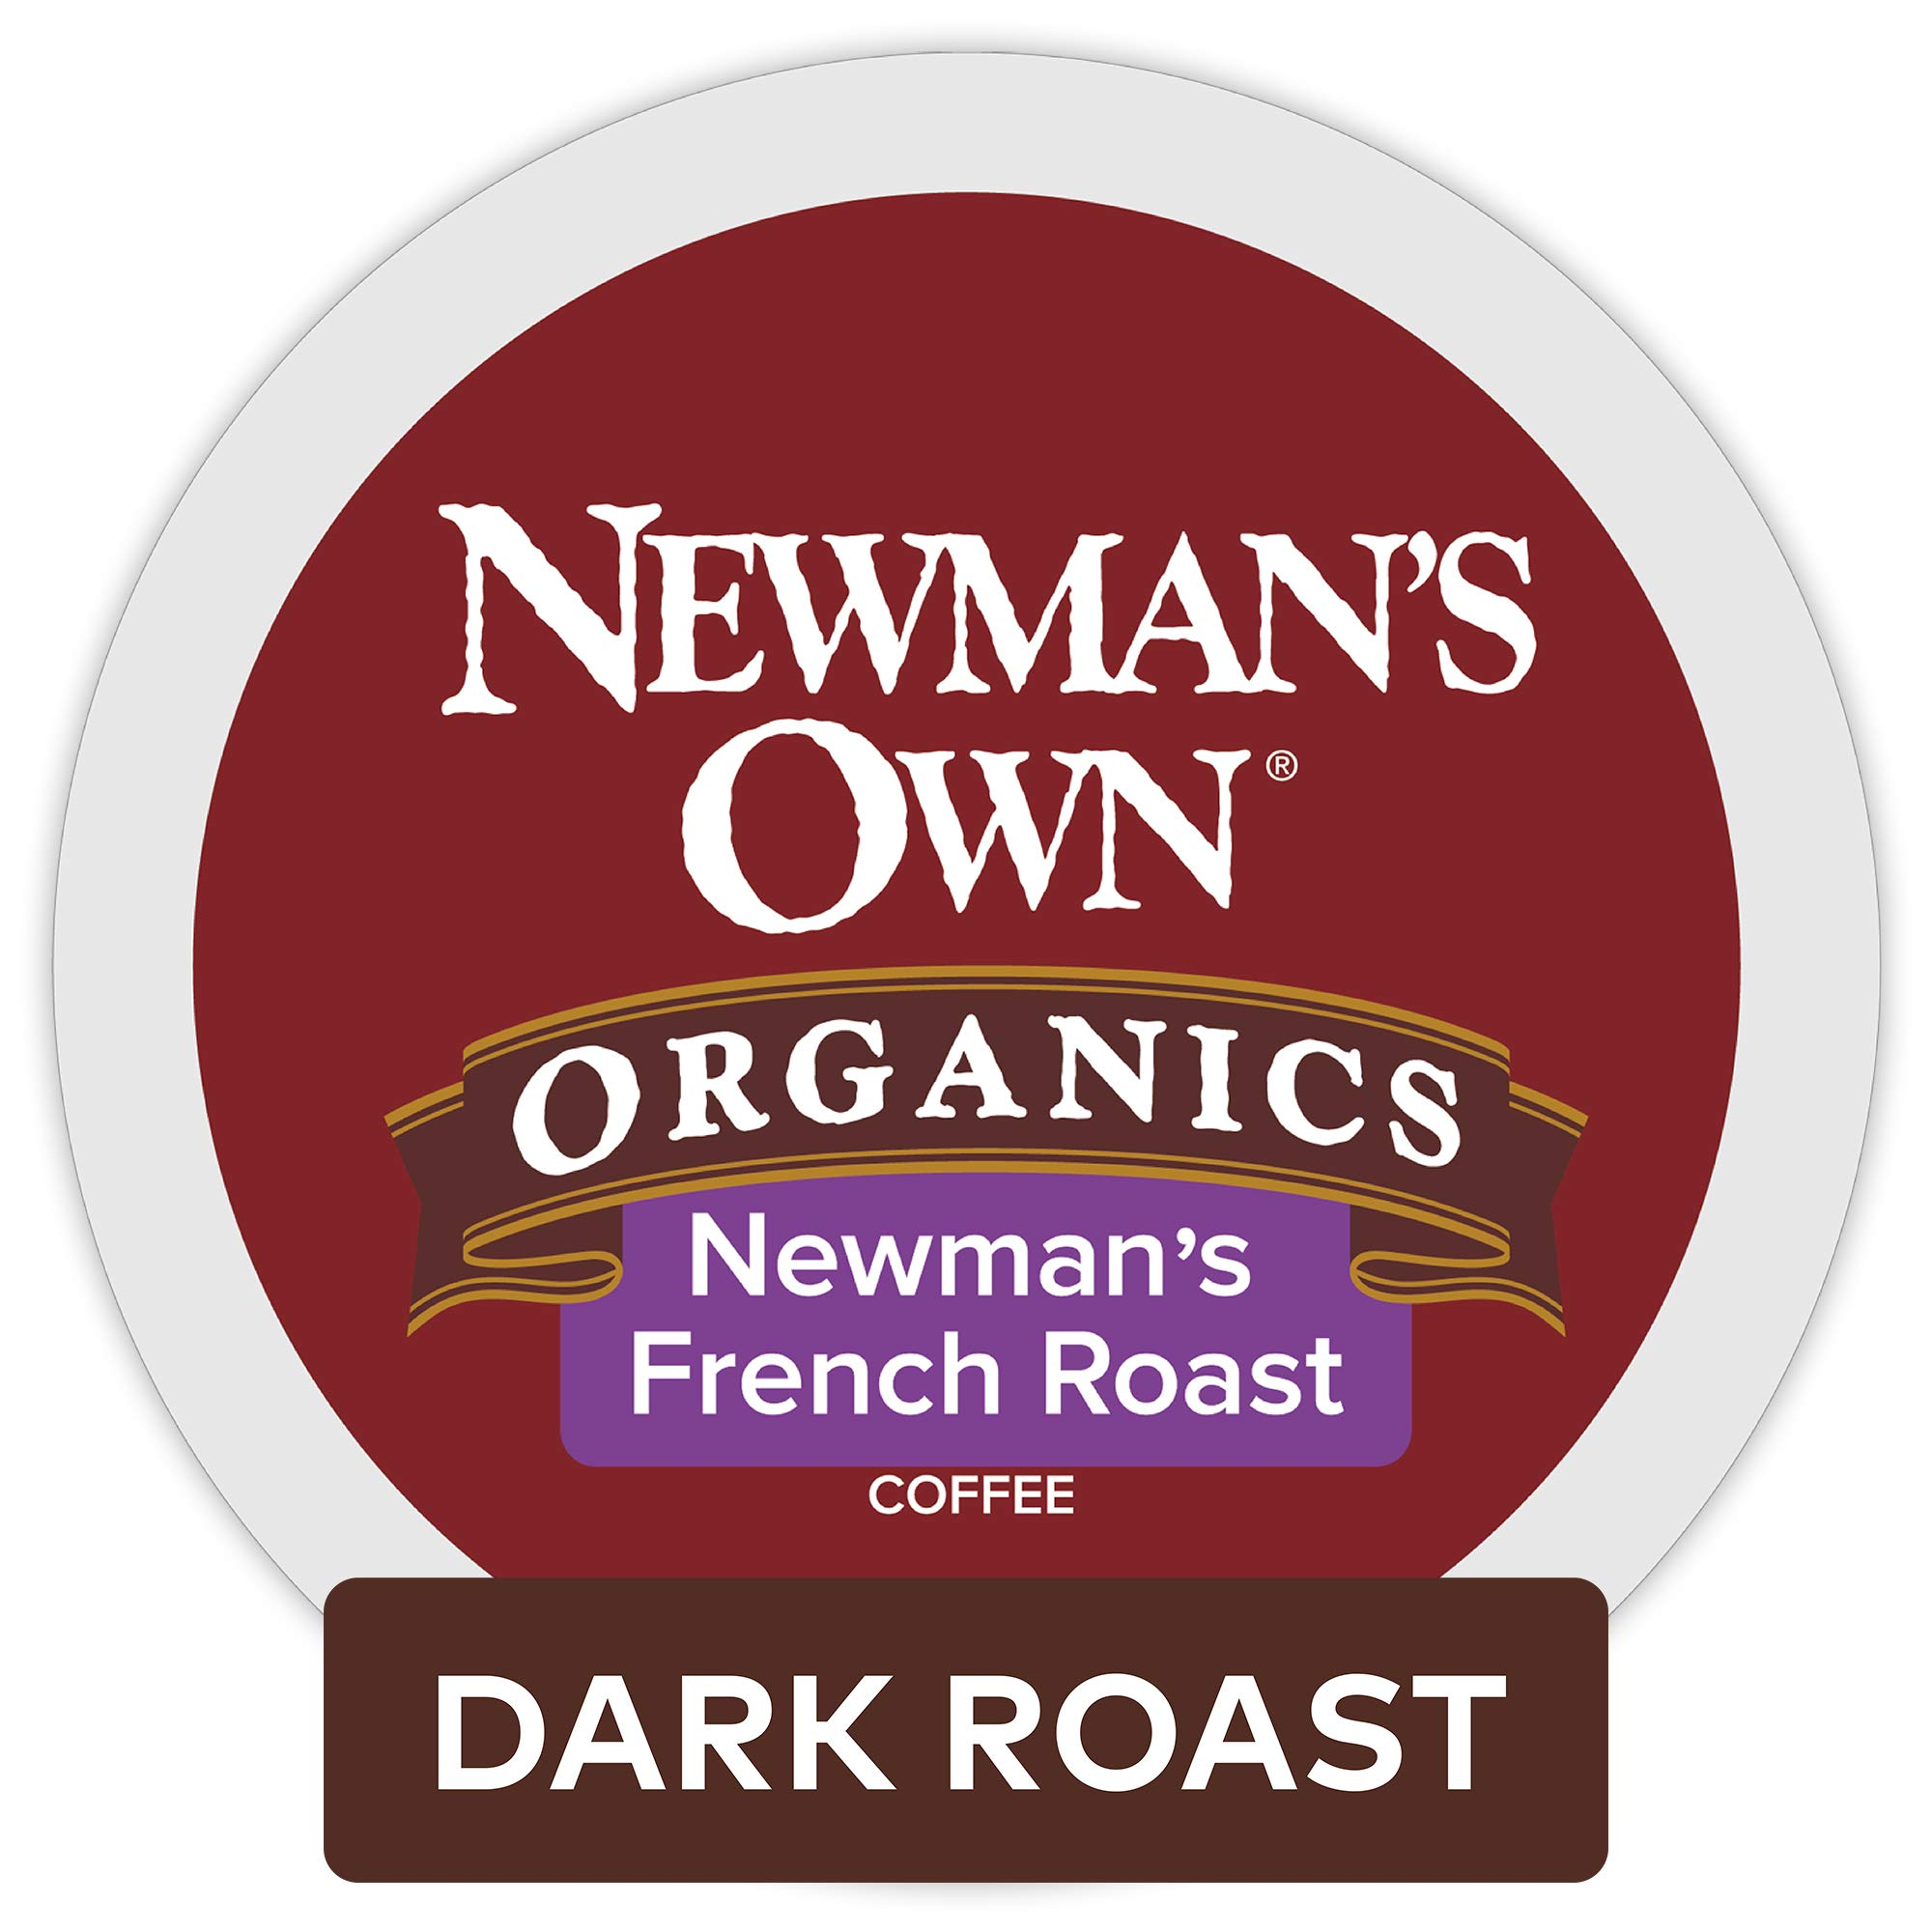 Newman's Own Organics French Roast Keurig K Cup Pods, Dark Roast Coffee, 96 Count